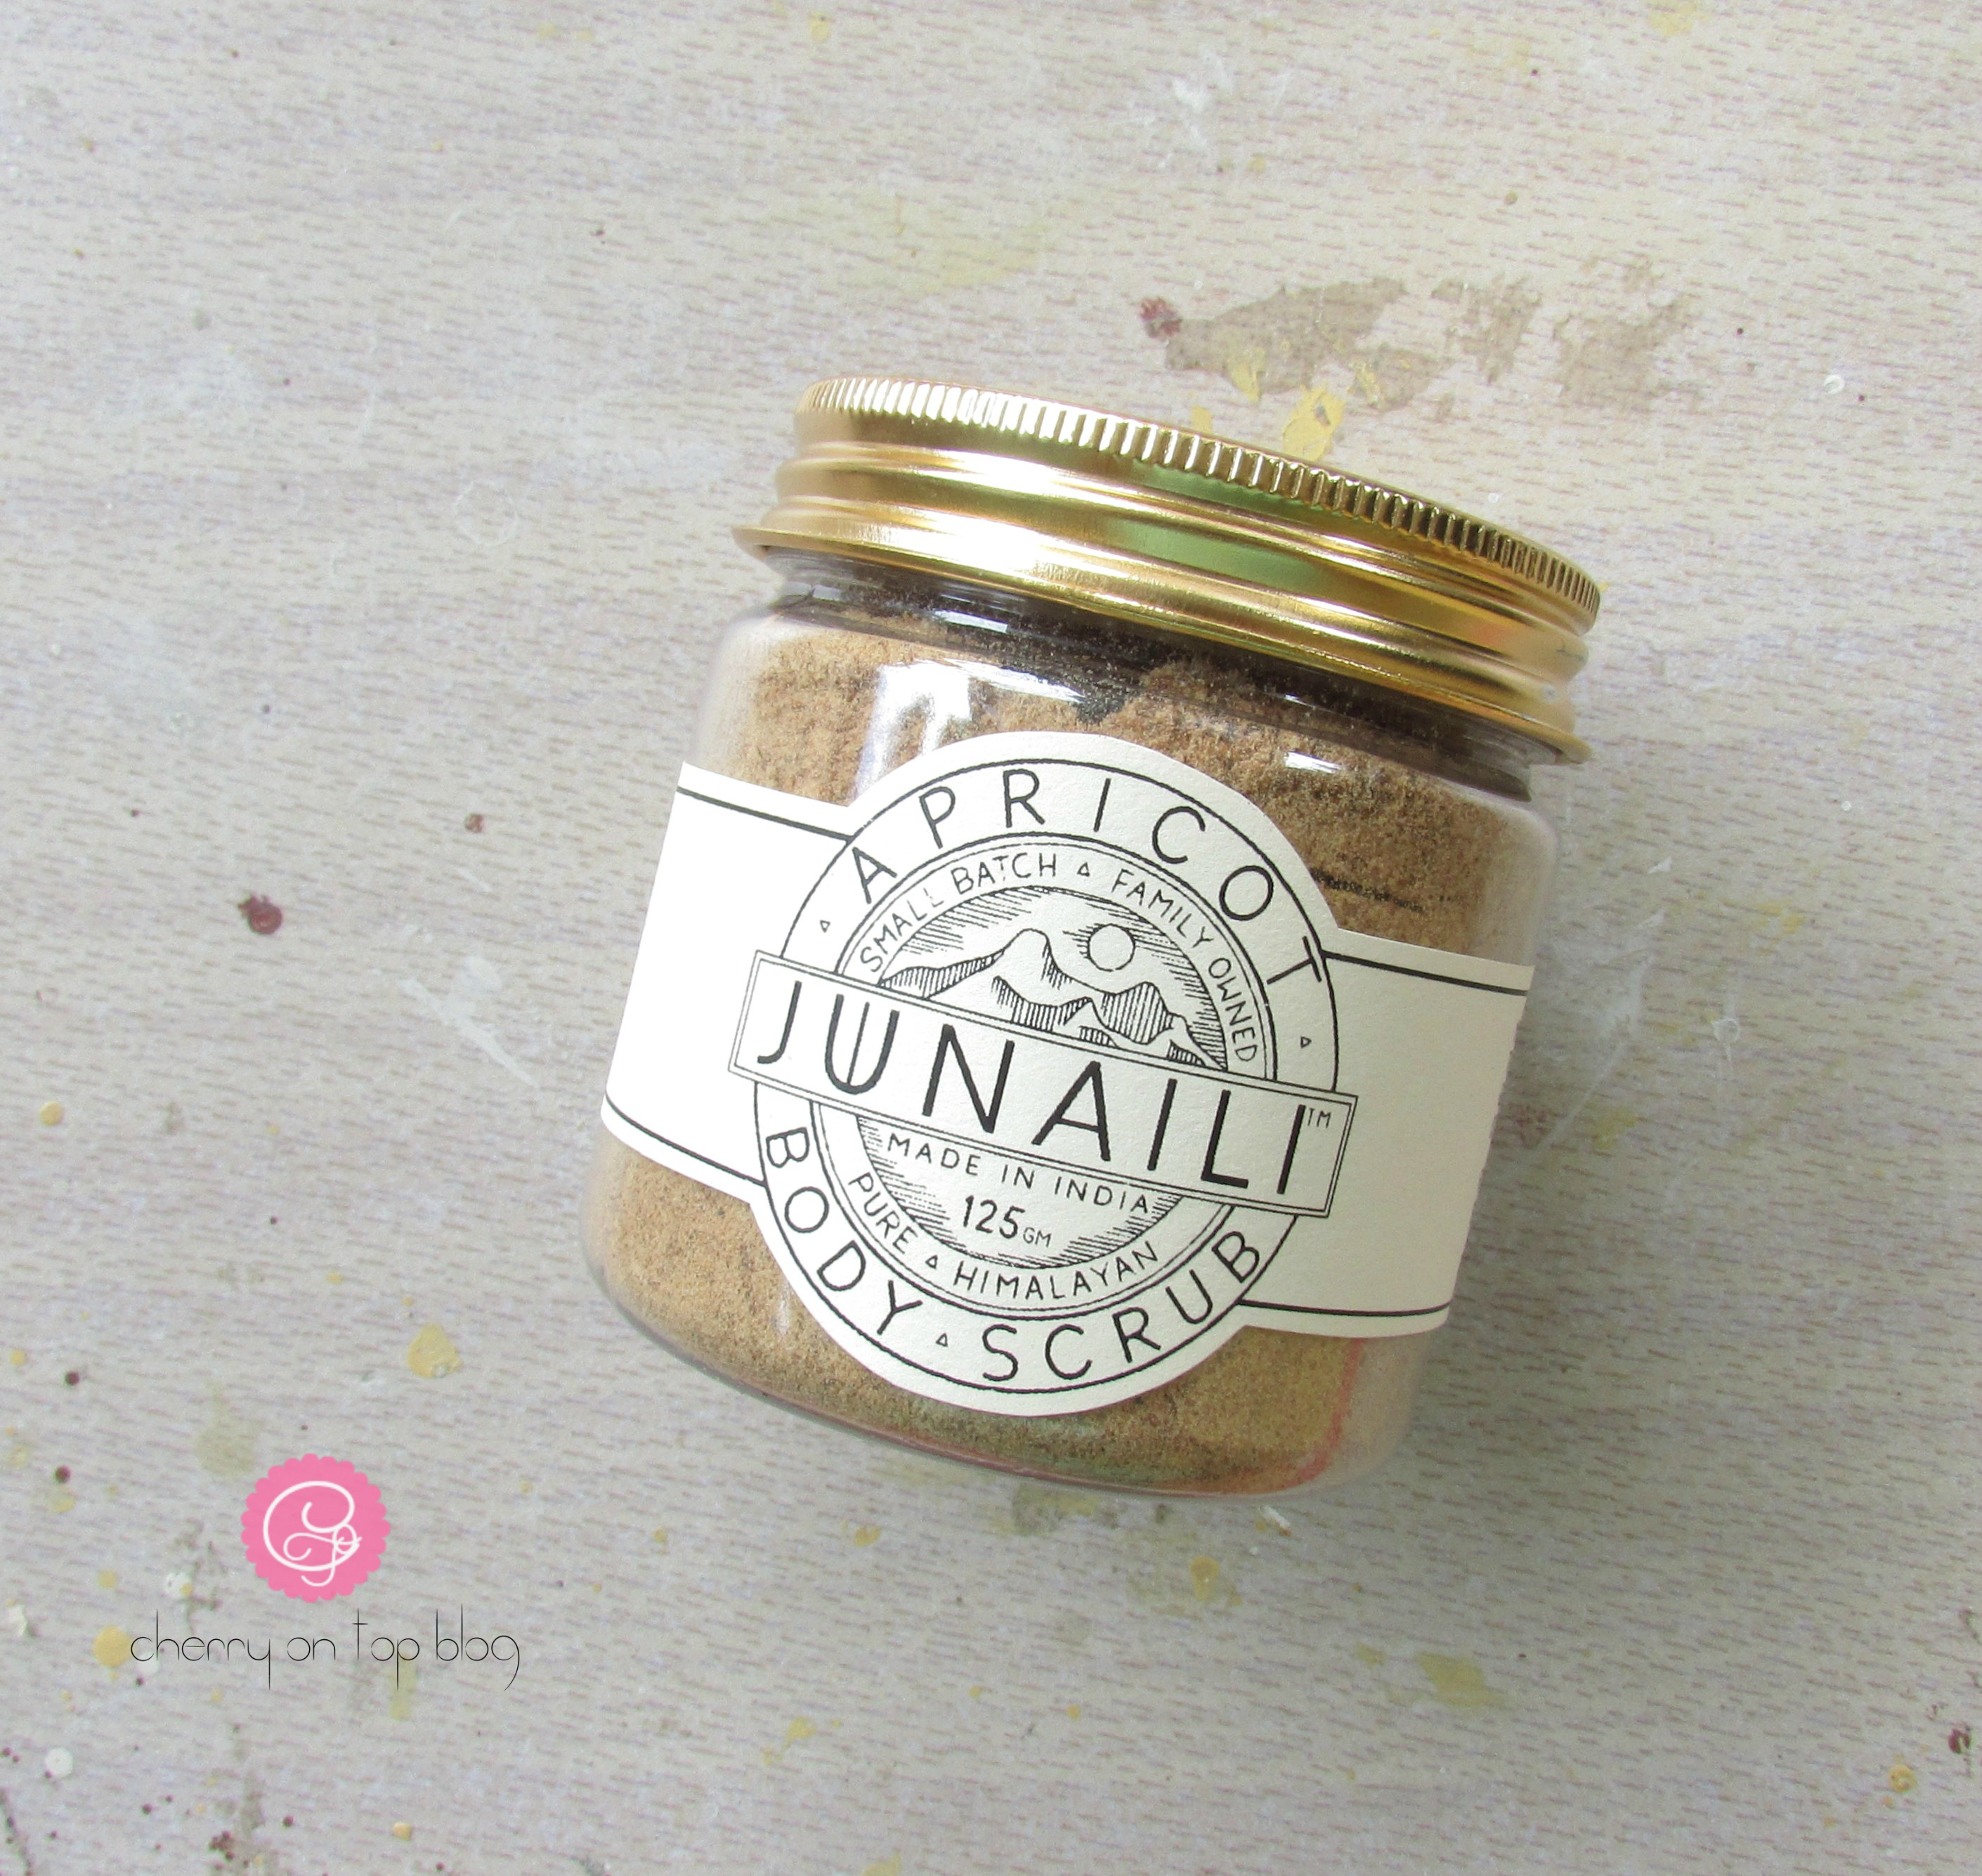 Junaili Apricot Body Scrub| Cherry On Top